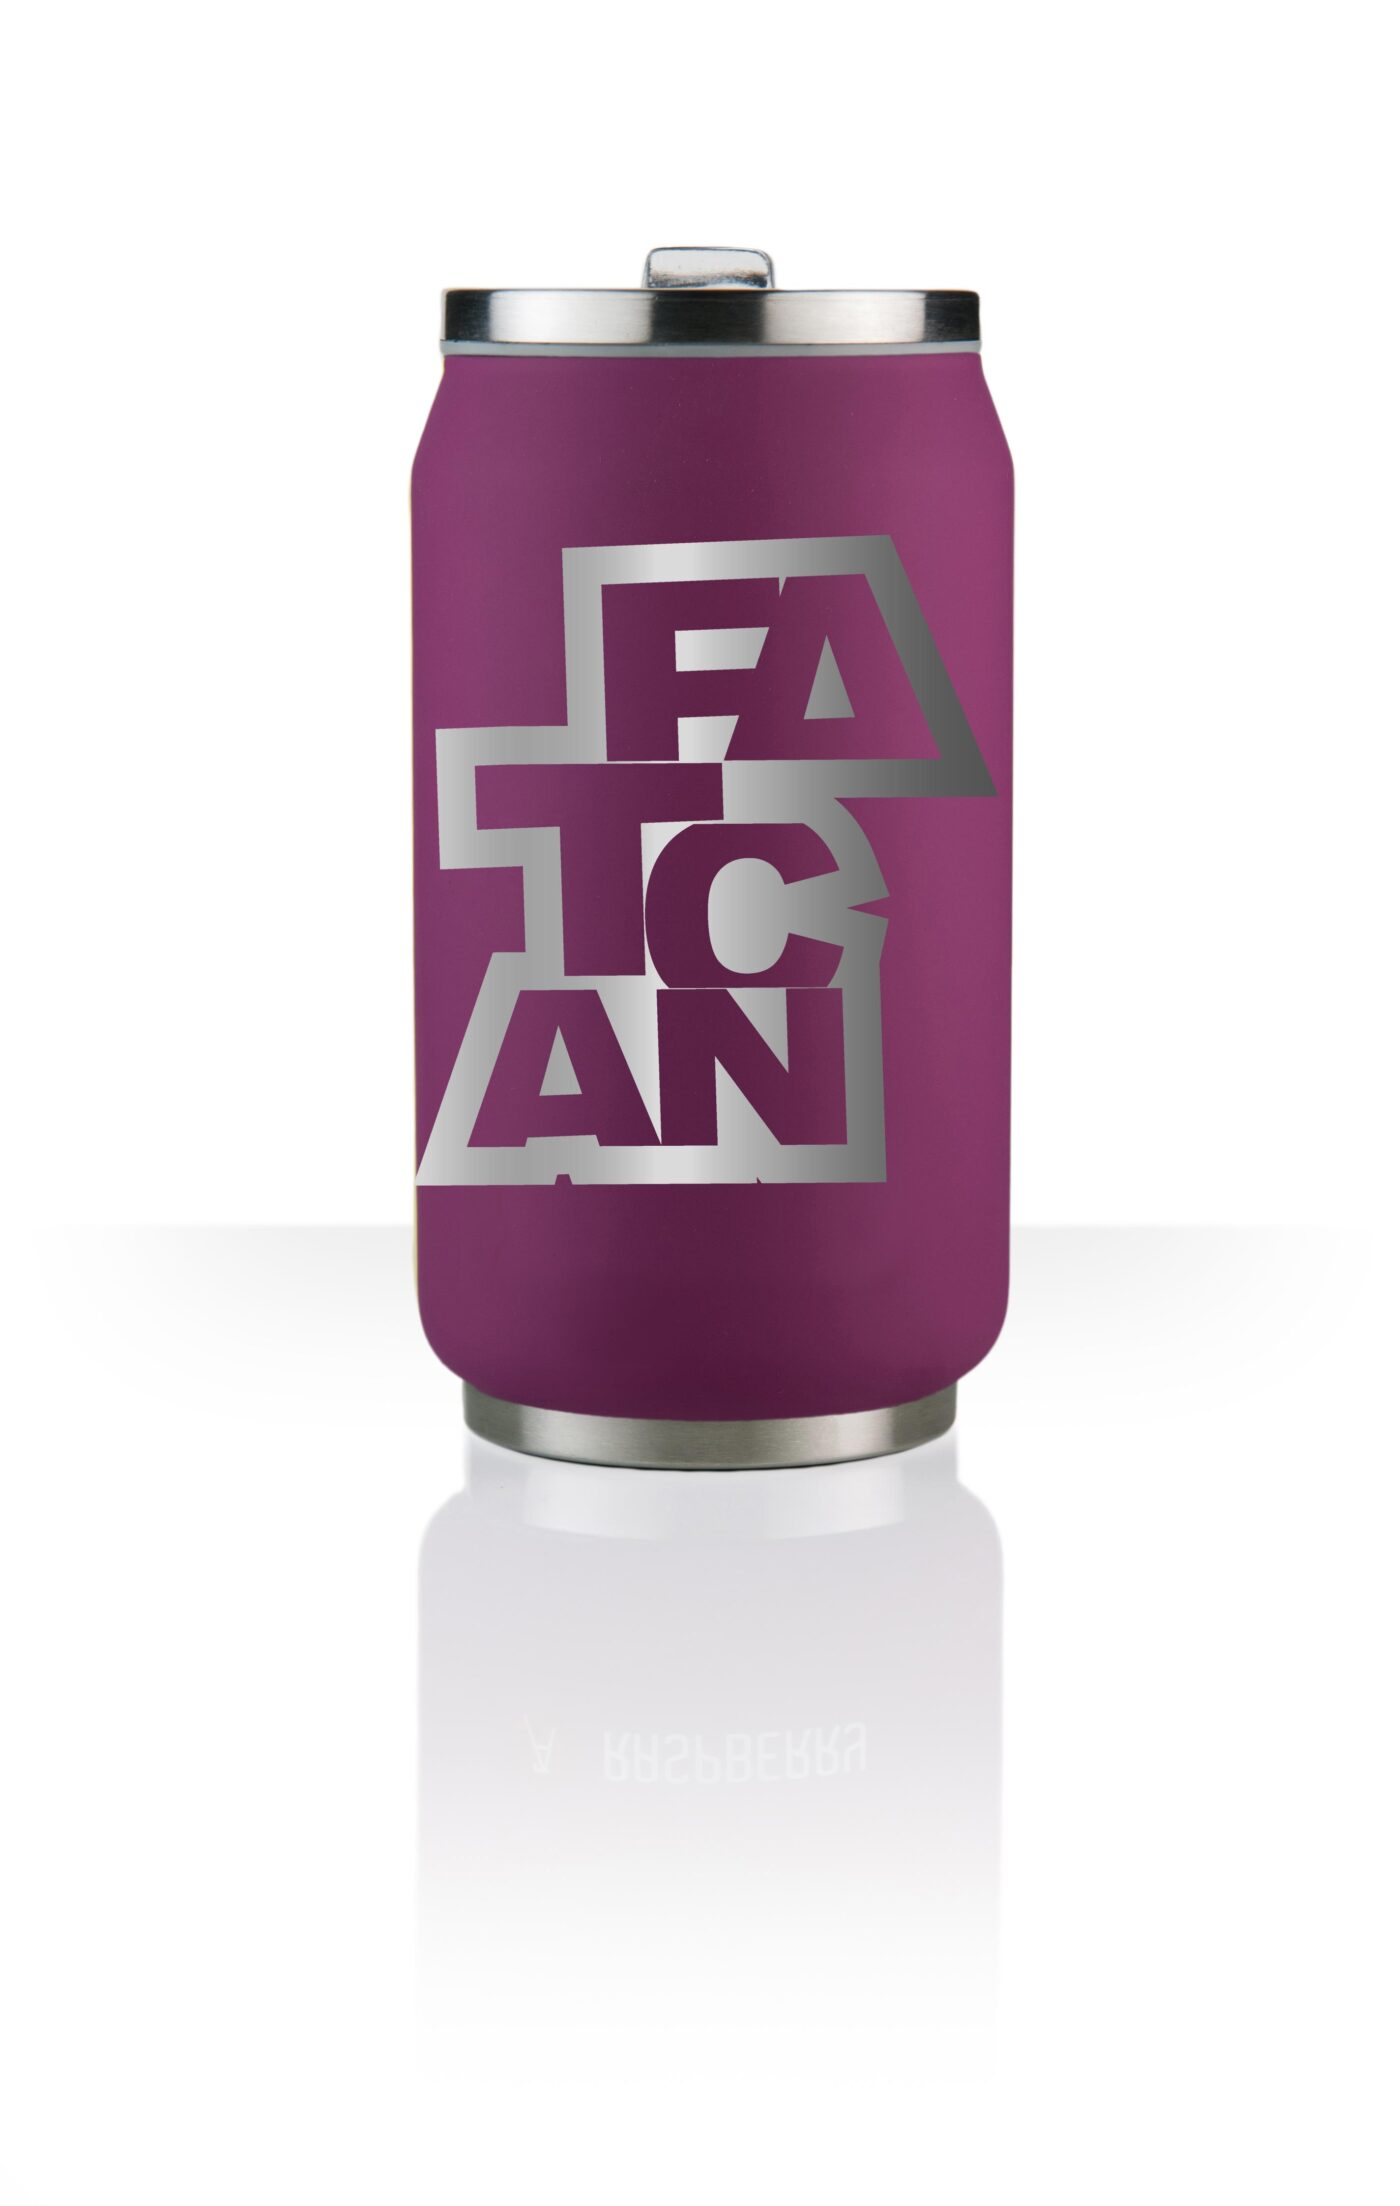 FATCAN_raspberry_matt_025